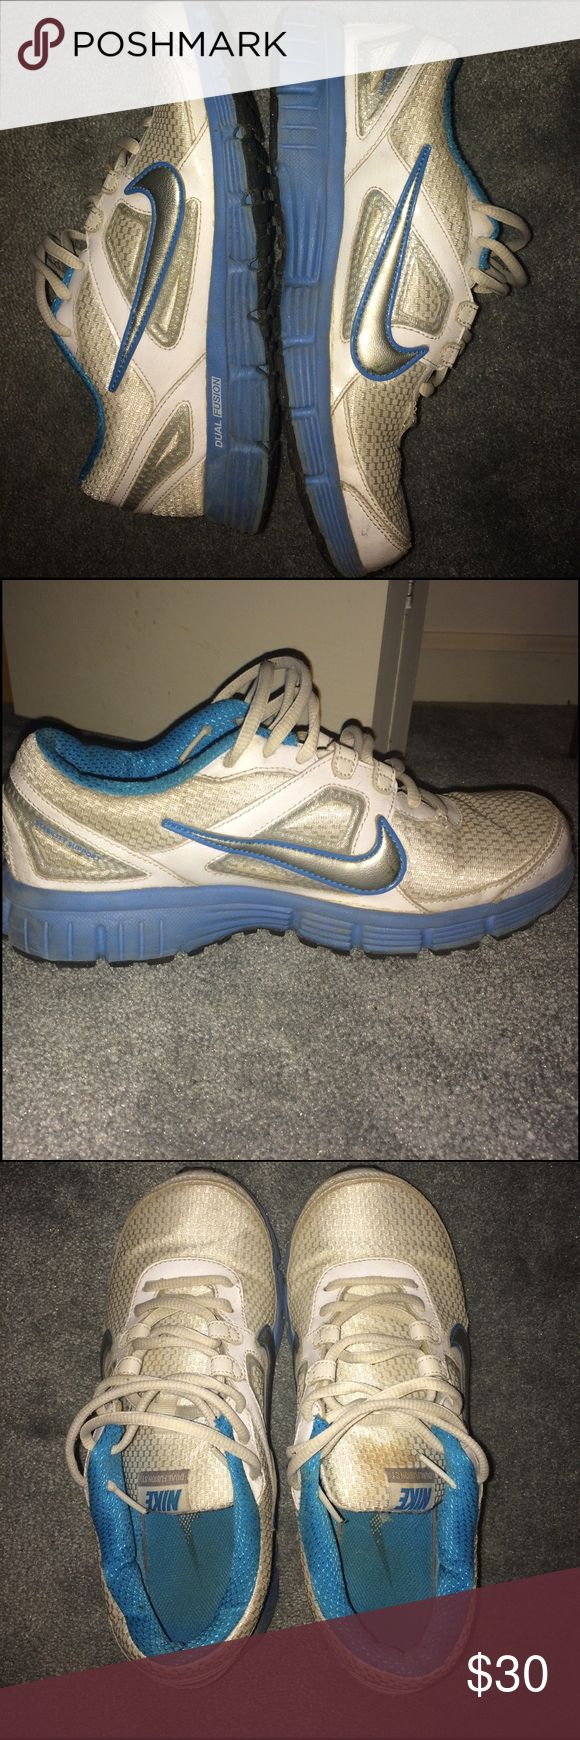 Nike Dual Fusion ST Sneakers white/light blue....very comfy and have lots of life left. in 3rd year of college and these haven't left the house once to come with me. can clean to best of my ability before shipping! Nike Shoes Athletic Shoes